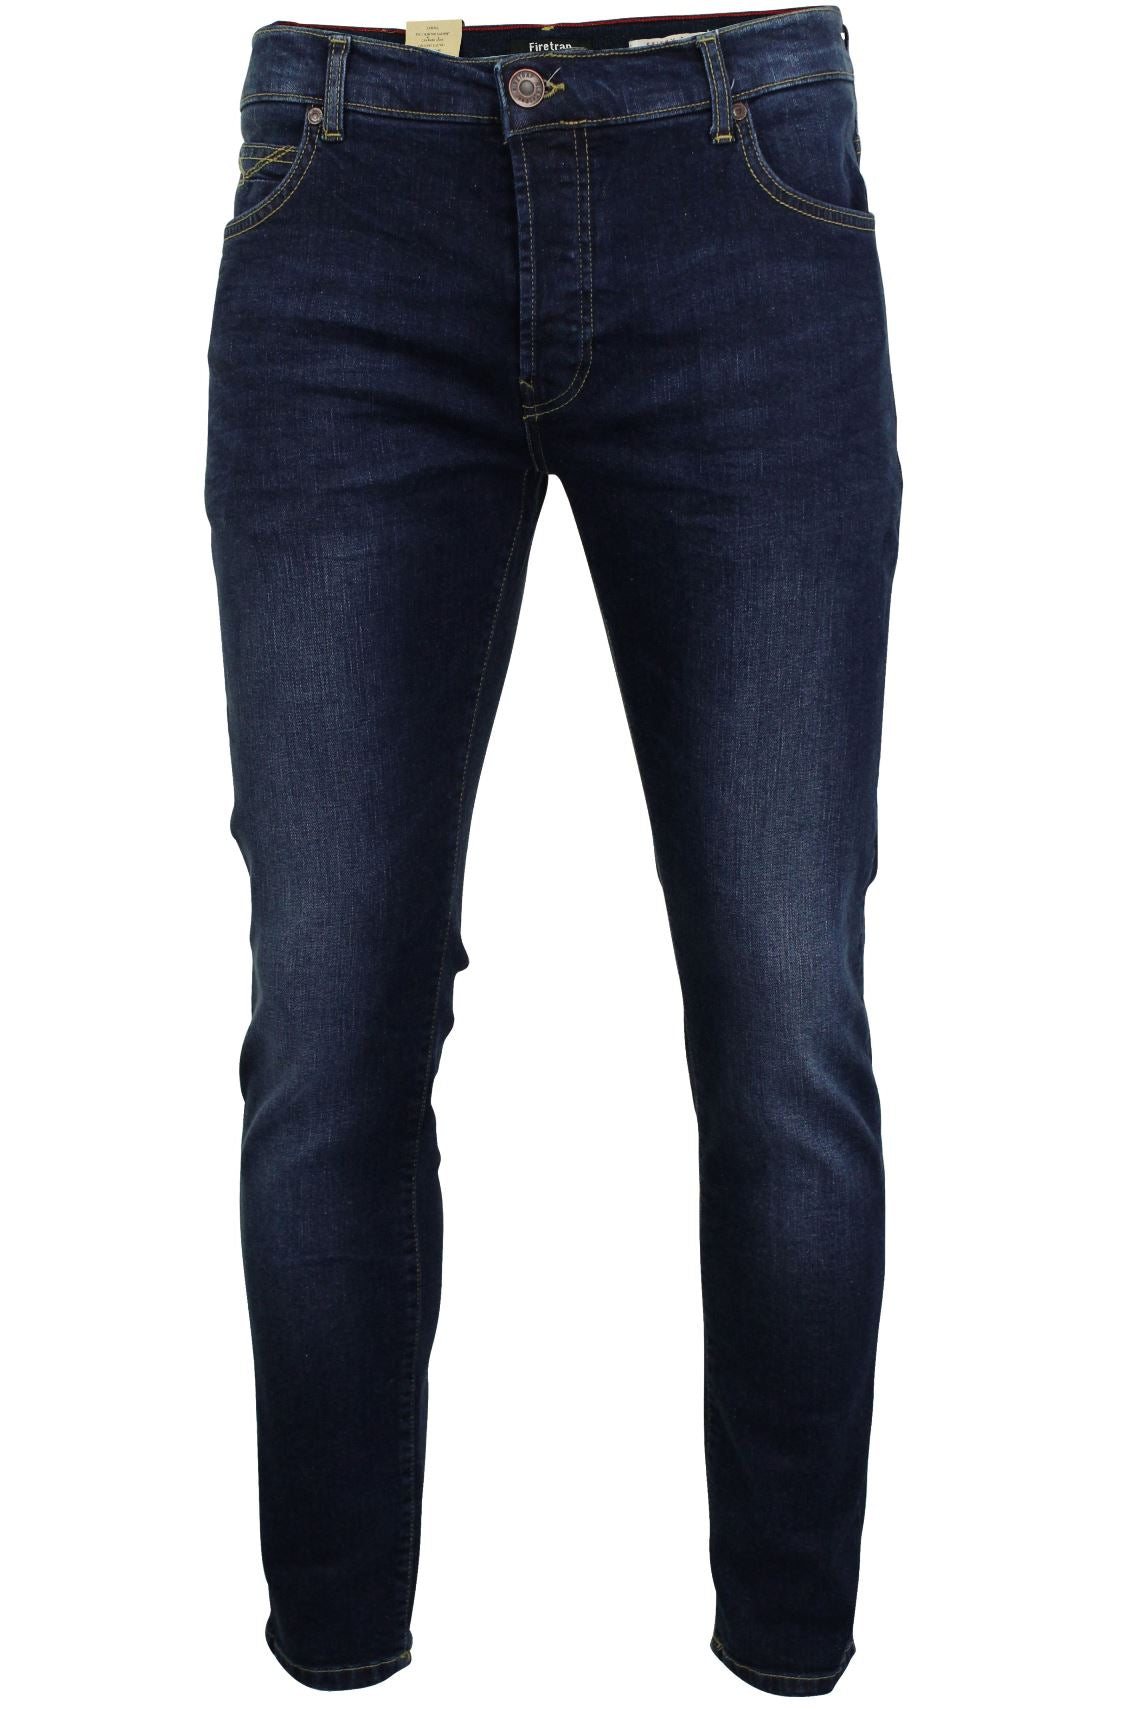 Mens Jeans by Firetrap 'Denhoff' Skinny Fit with Button Fly-Main Image